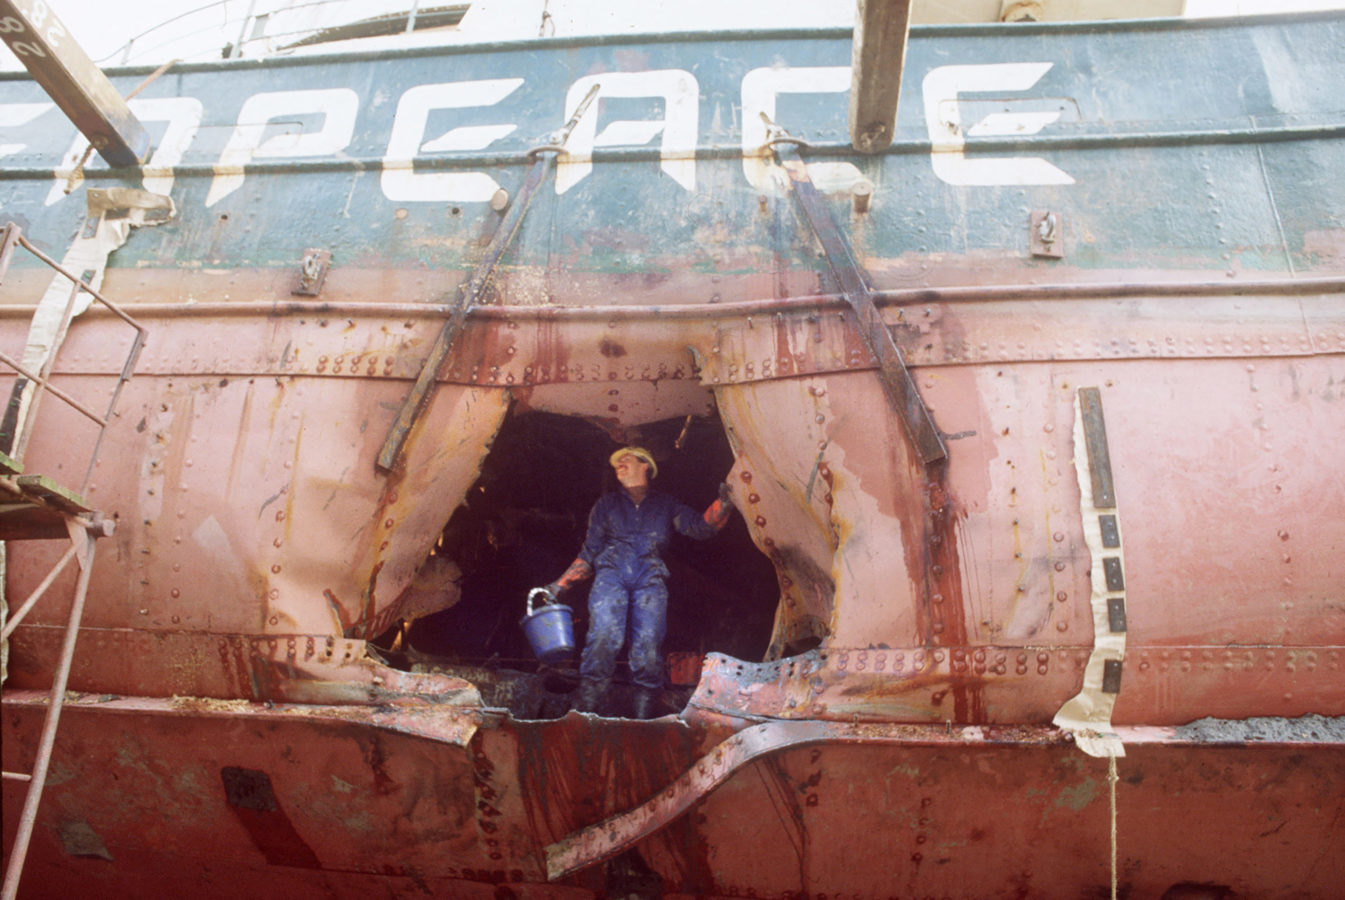 Greenpeace: An 'insane' vision that took flight 50 years ago